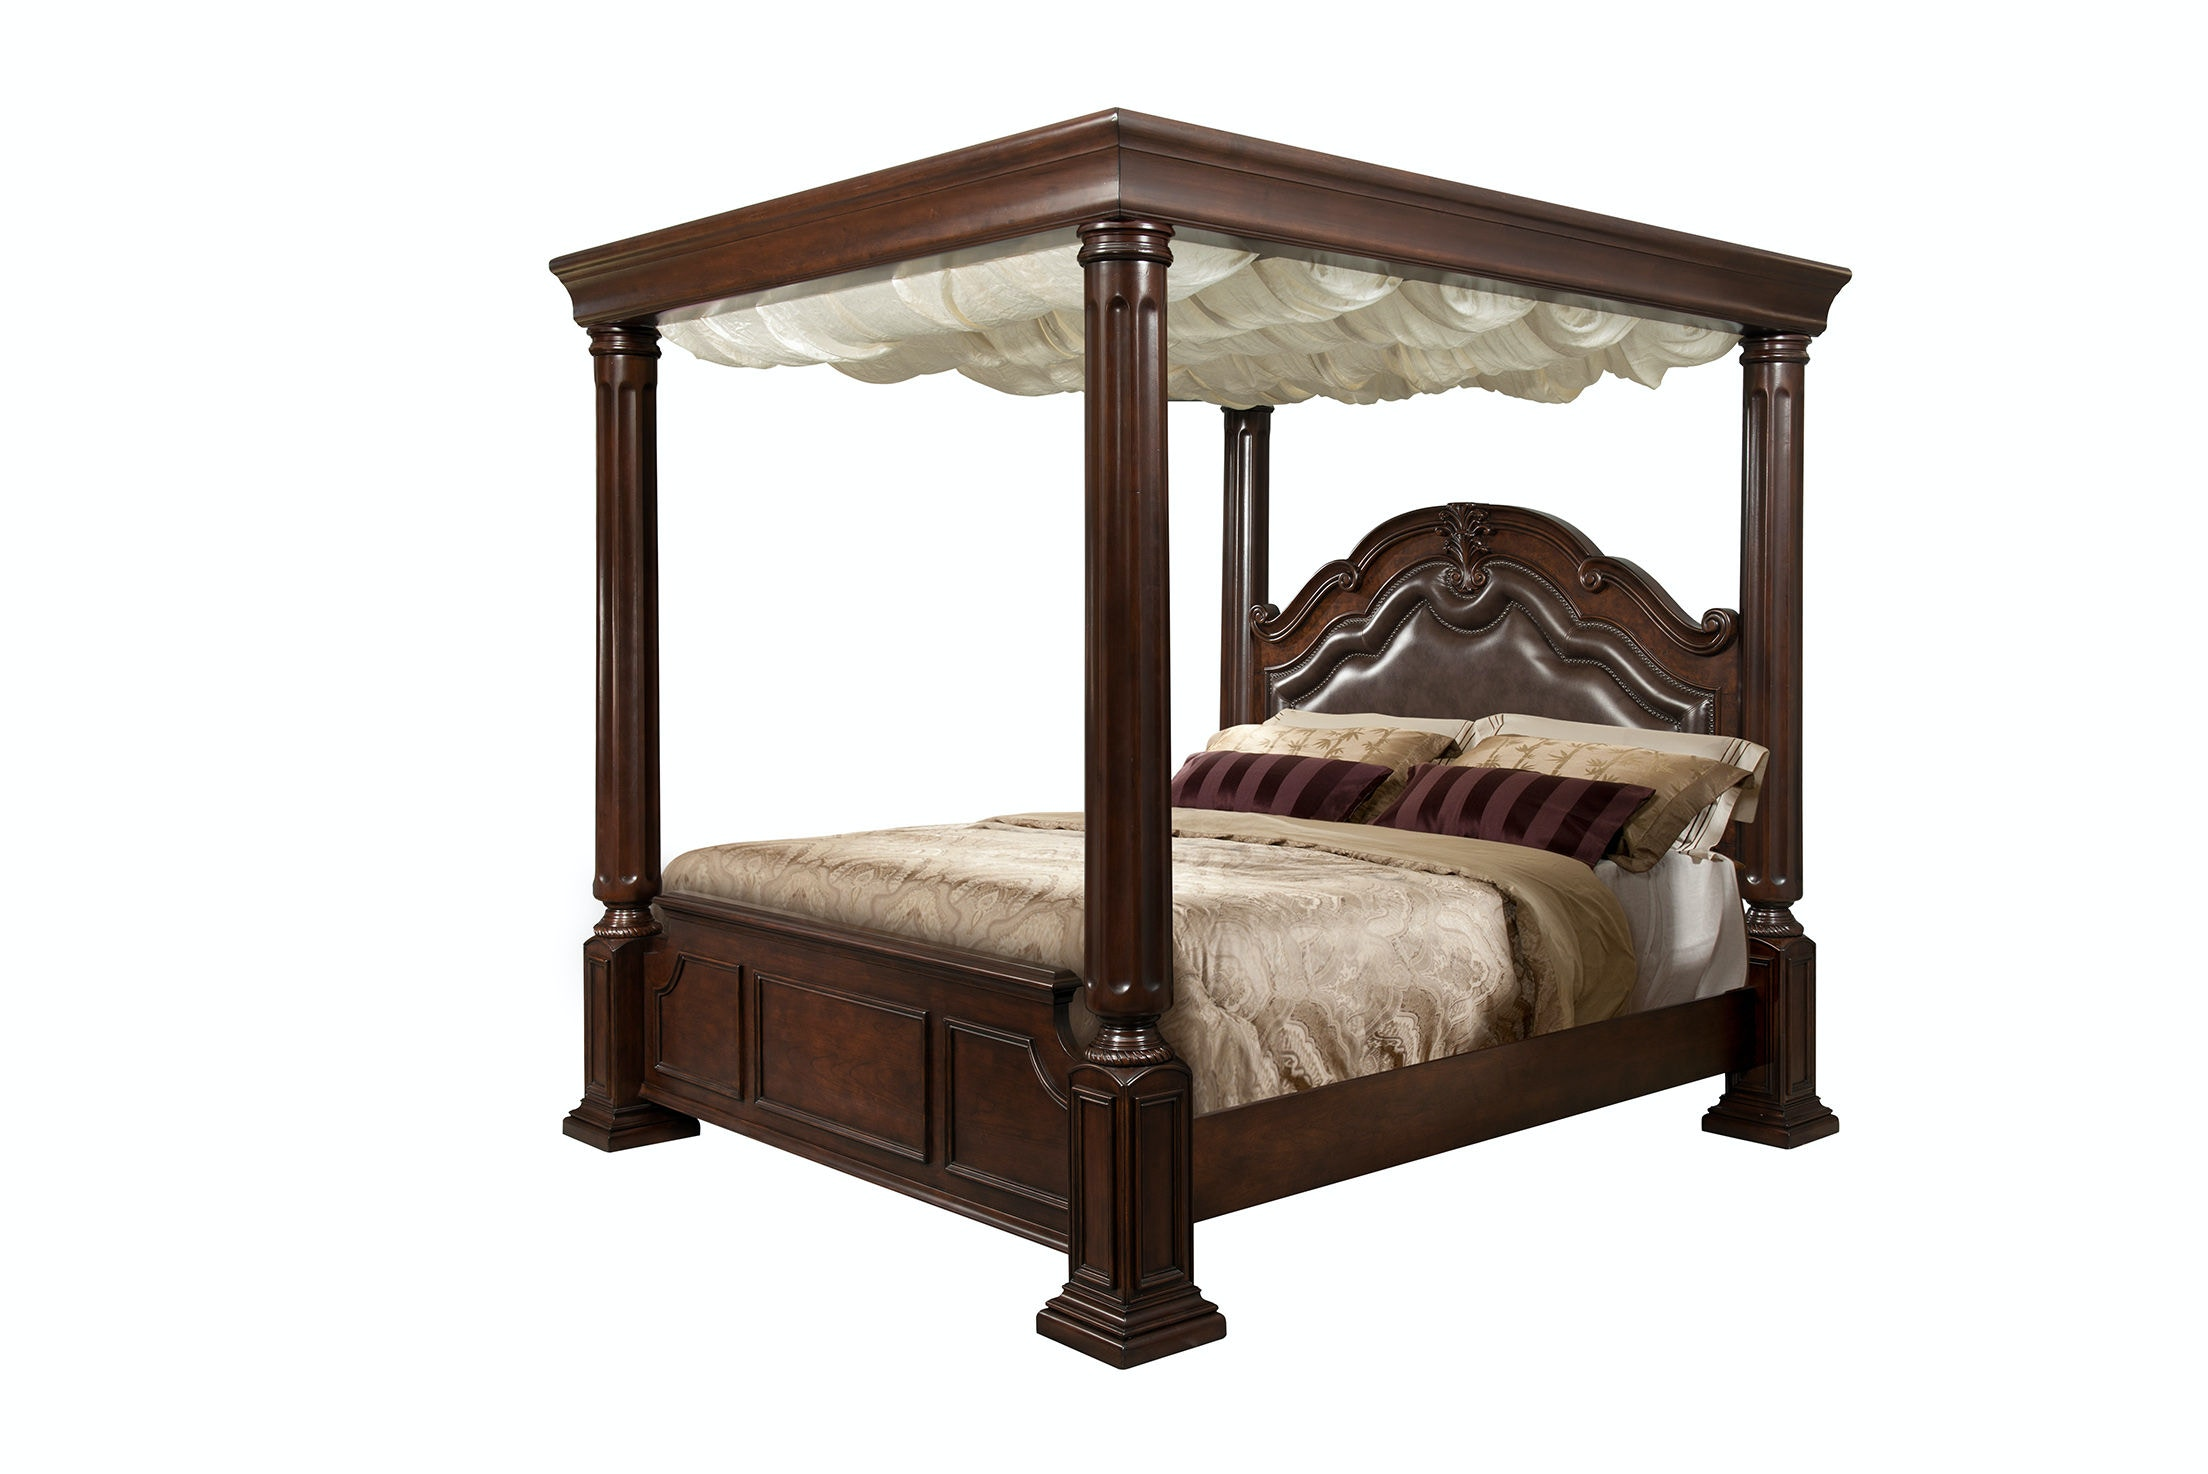 Elements International Tabasco Wooden Canopy Bedroom  sc 1 st  Butterworthu0027s Furniture & Elements International Tabasco Wooden Canopy Bedroom ...